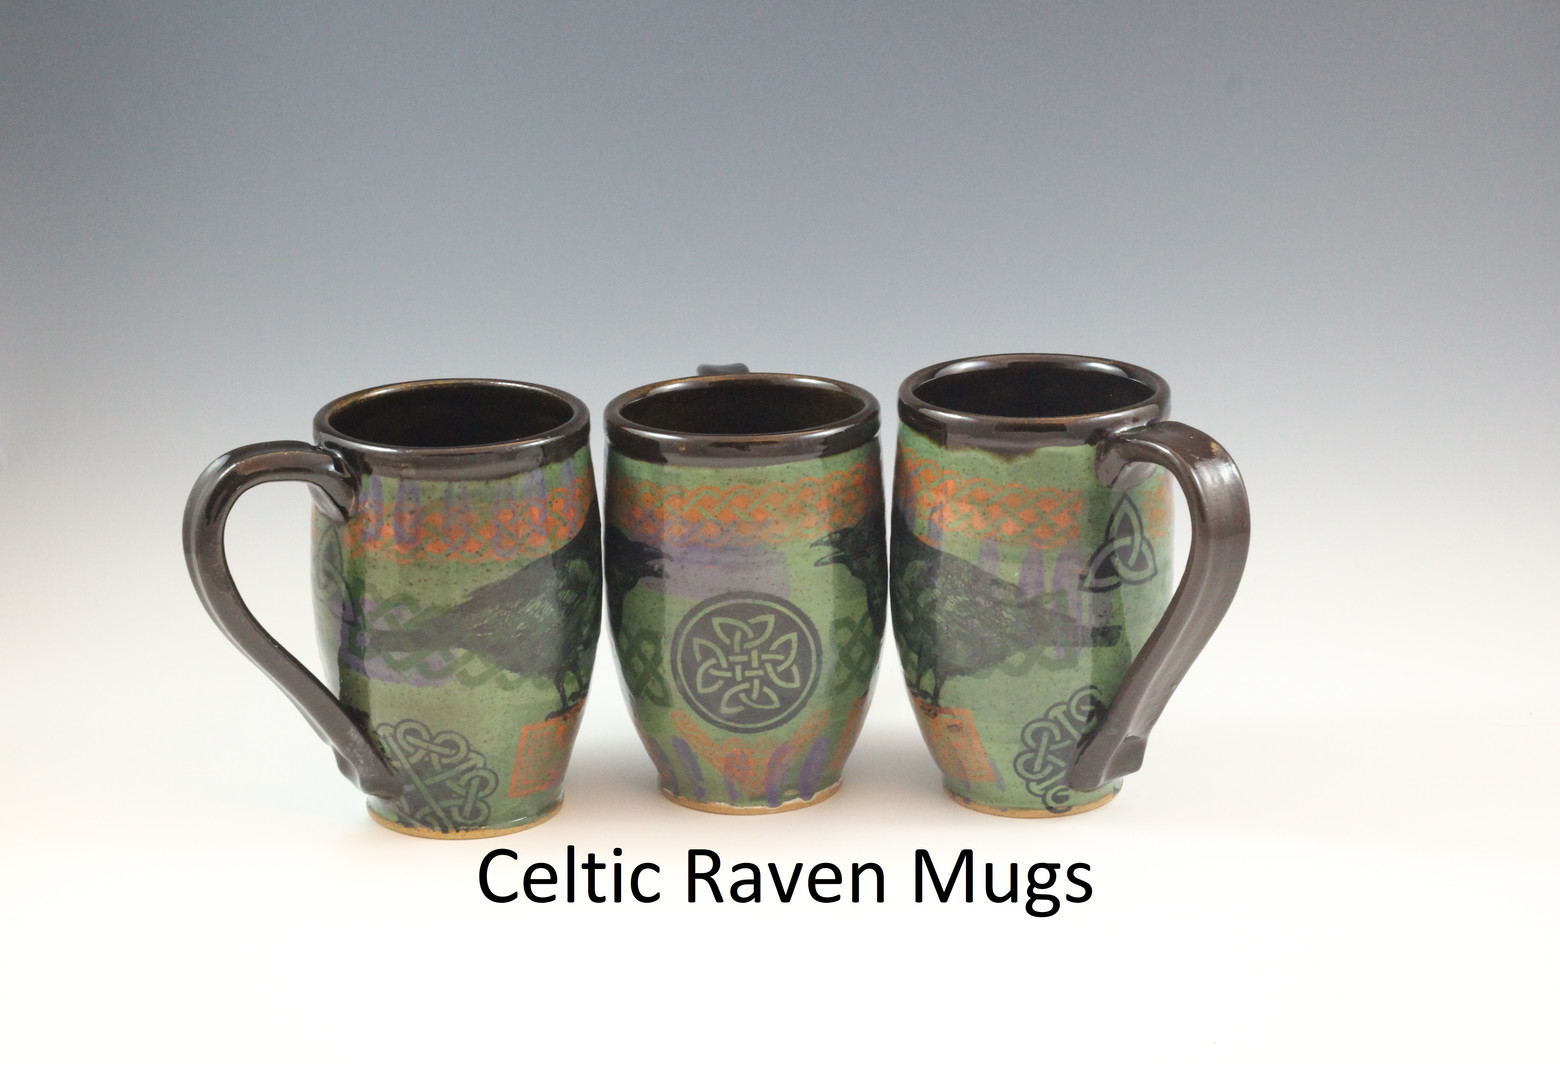 Celtic Raven Mugs